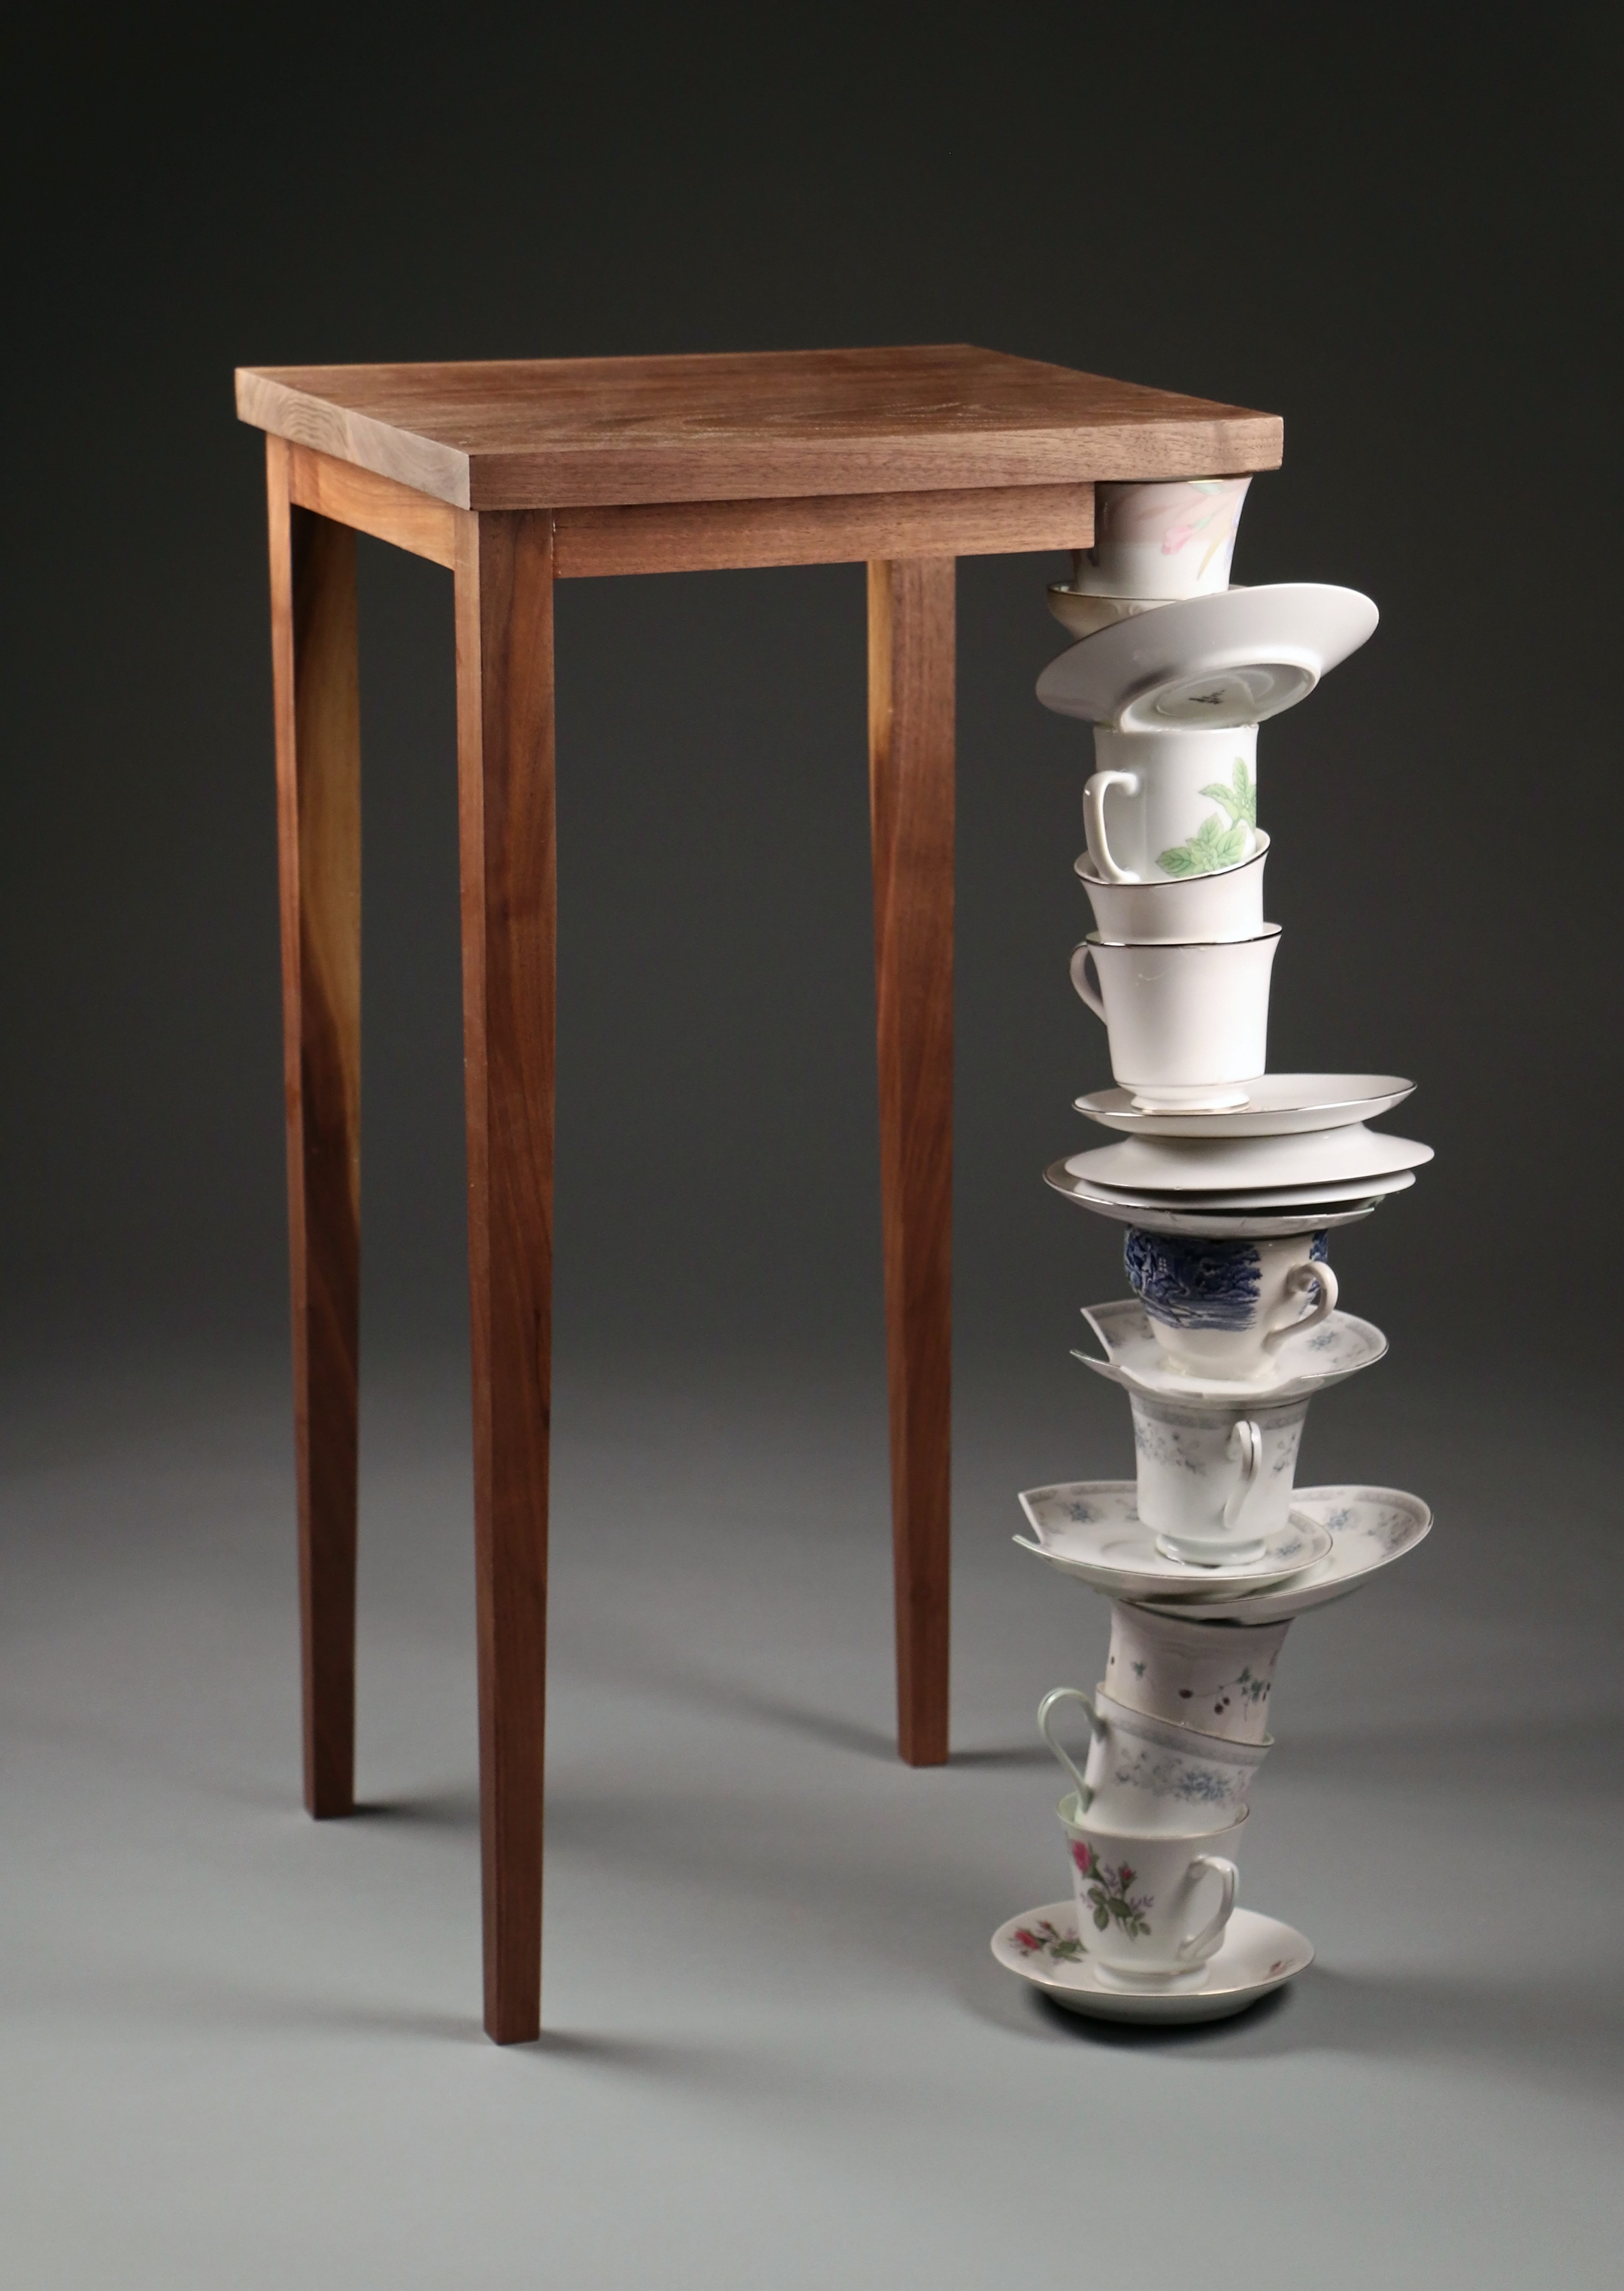 3D art of a table with one leg replaced by a stack of cups and saucers